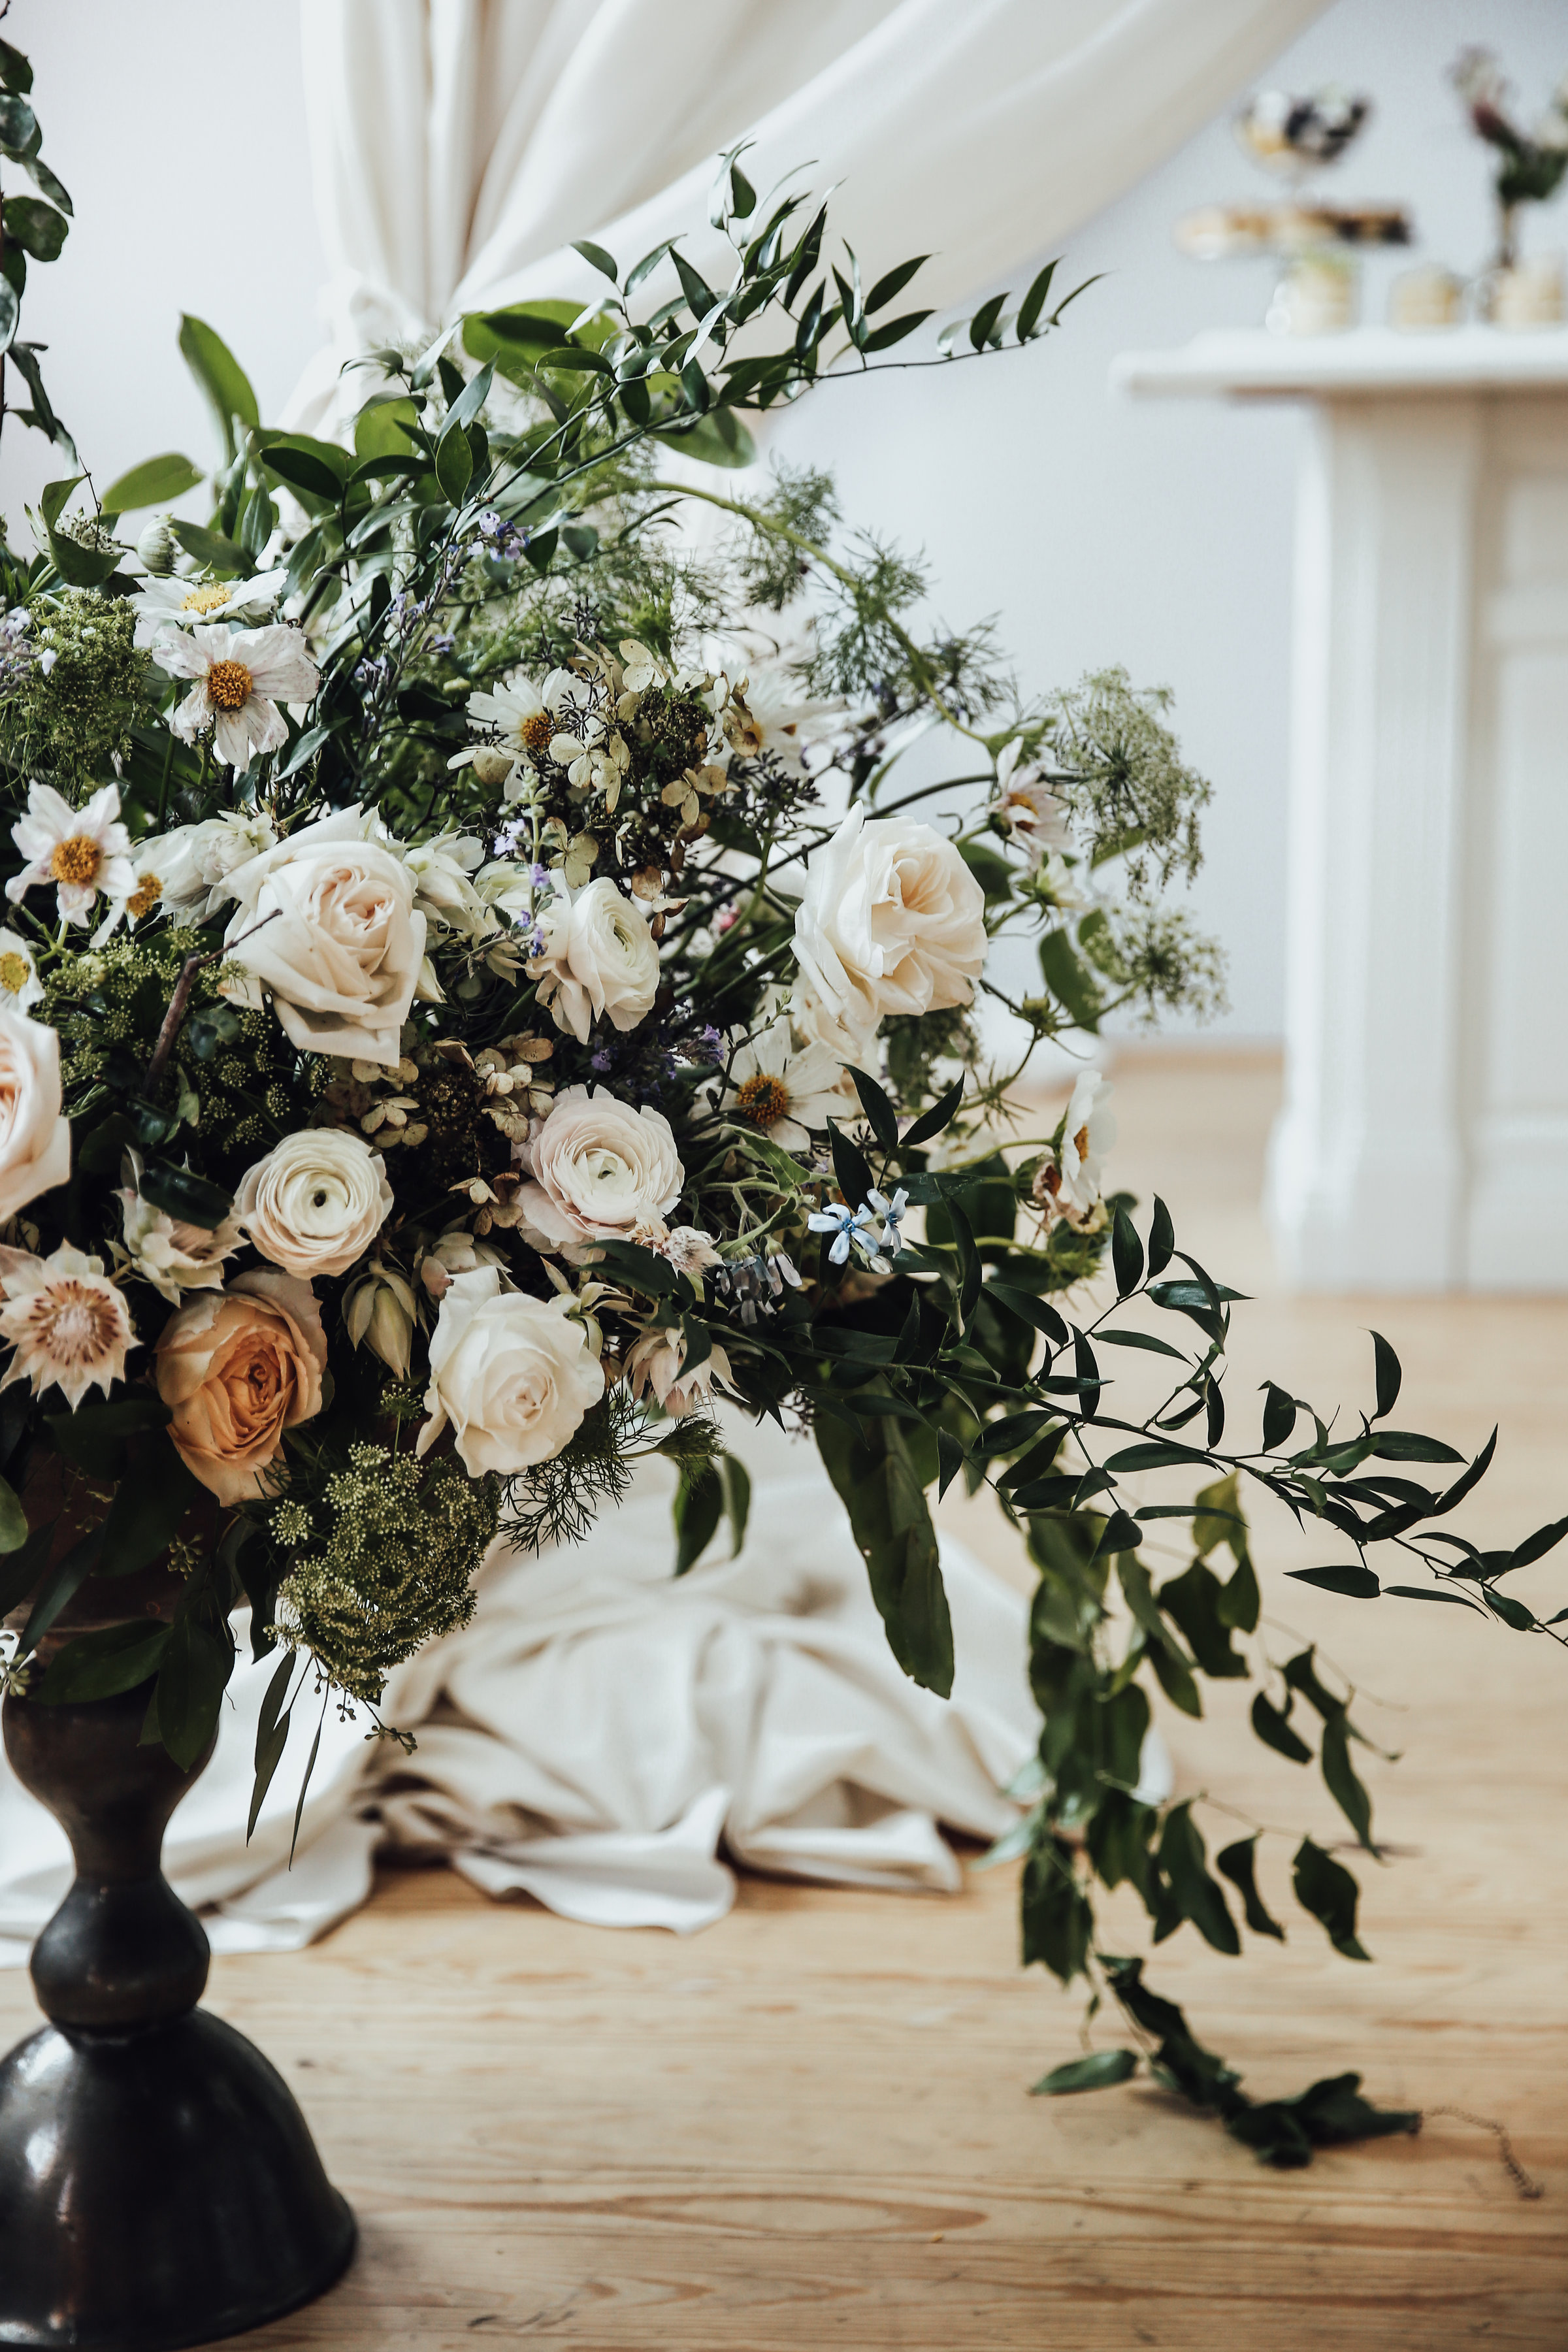 Photo by Rachel Photographs | Flowers by The Wild Mother | Venue: Holloway House